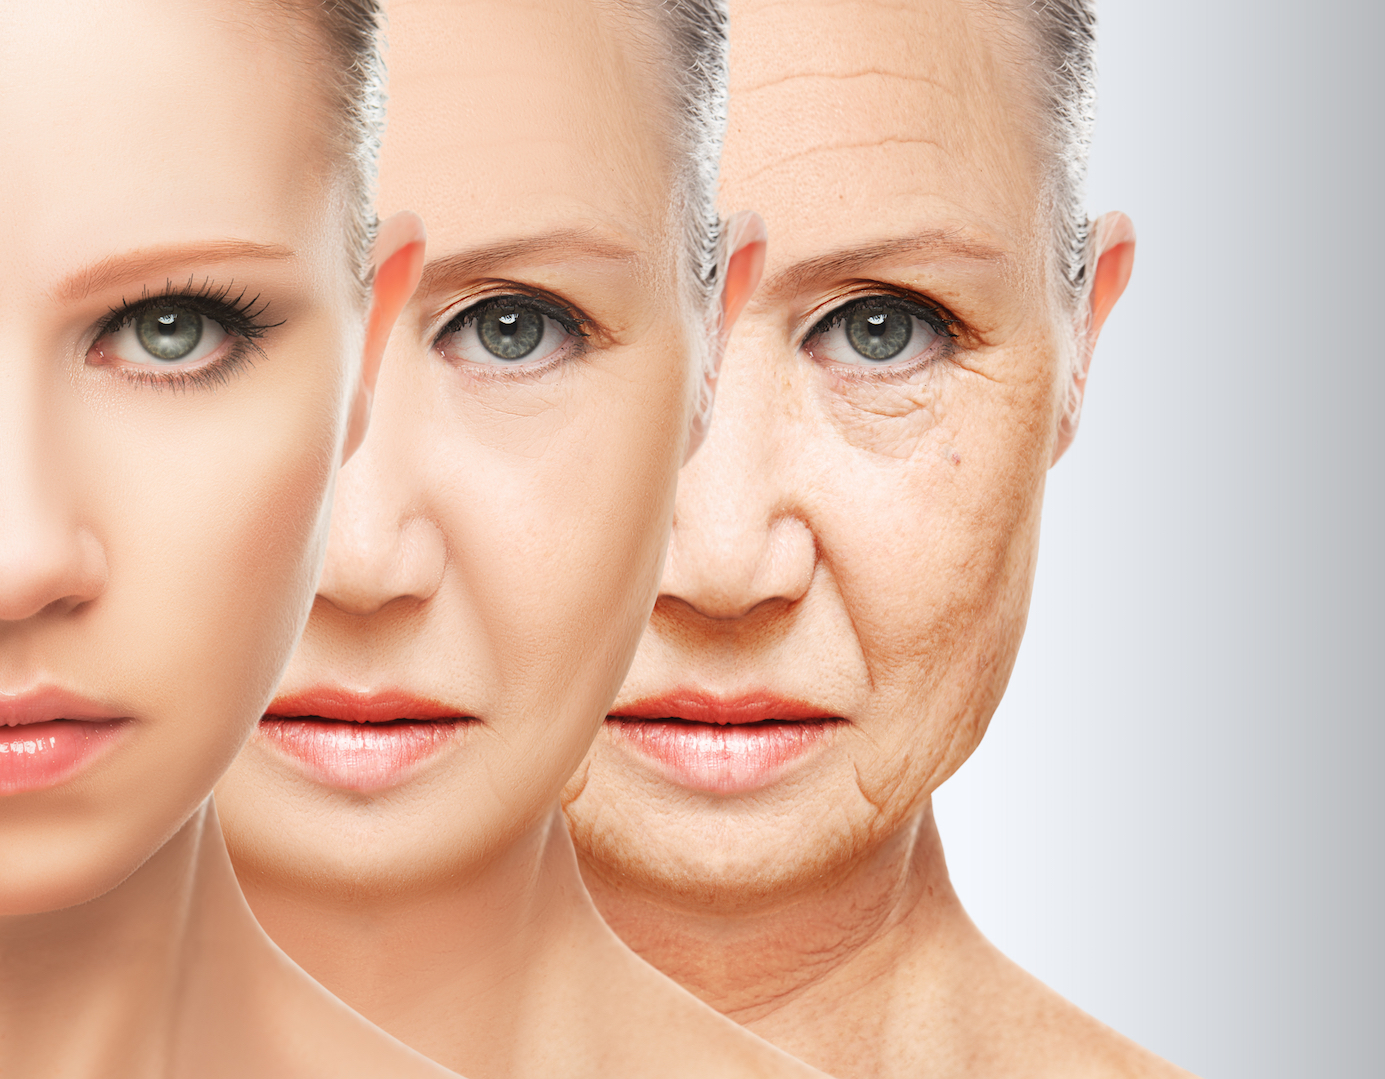 A report published today in the online journal Nature reveals that scientists have identified brain cells that control aging.